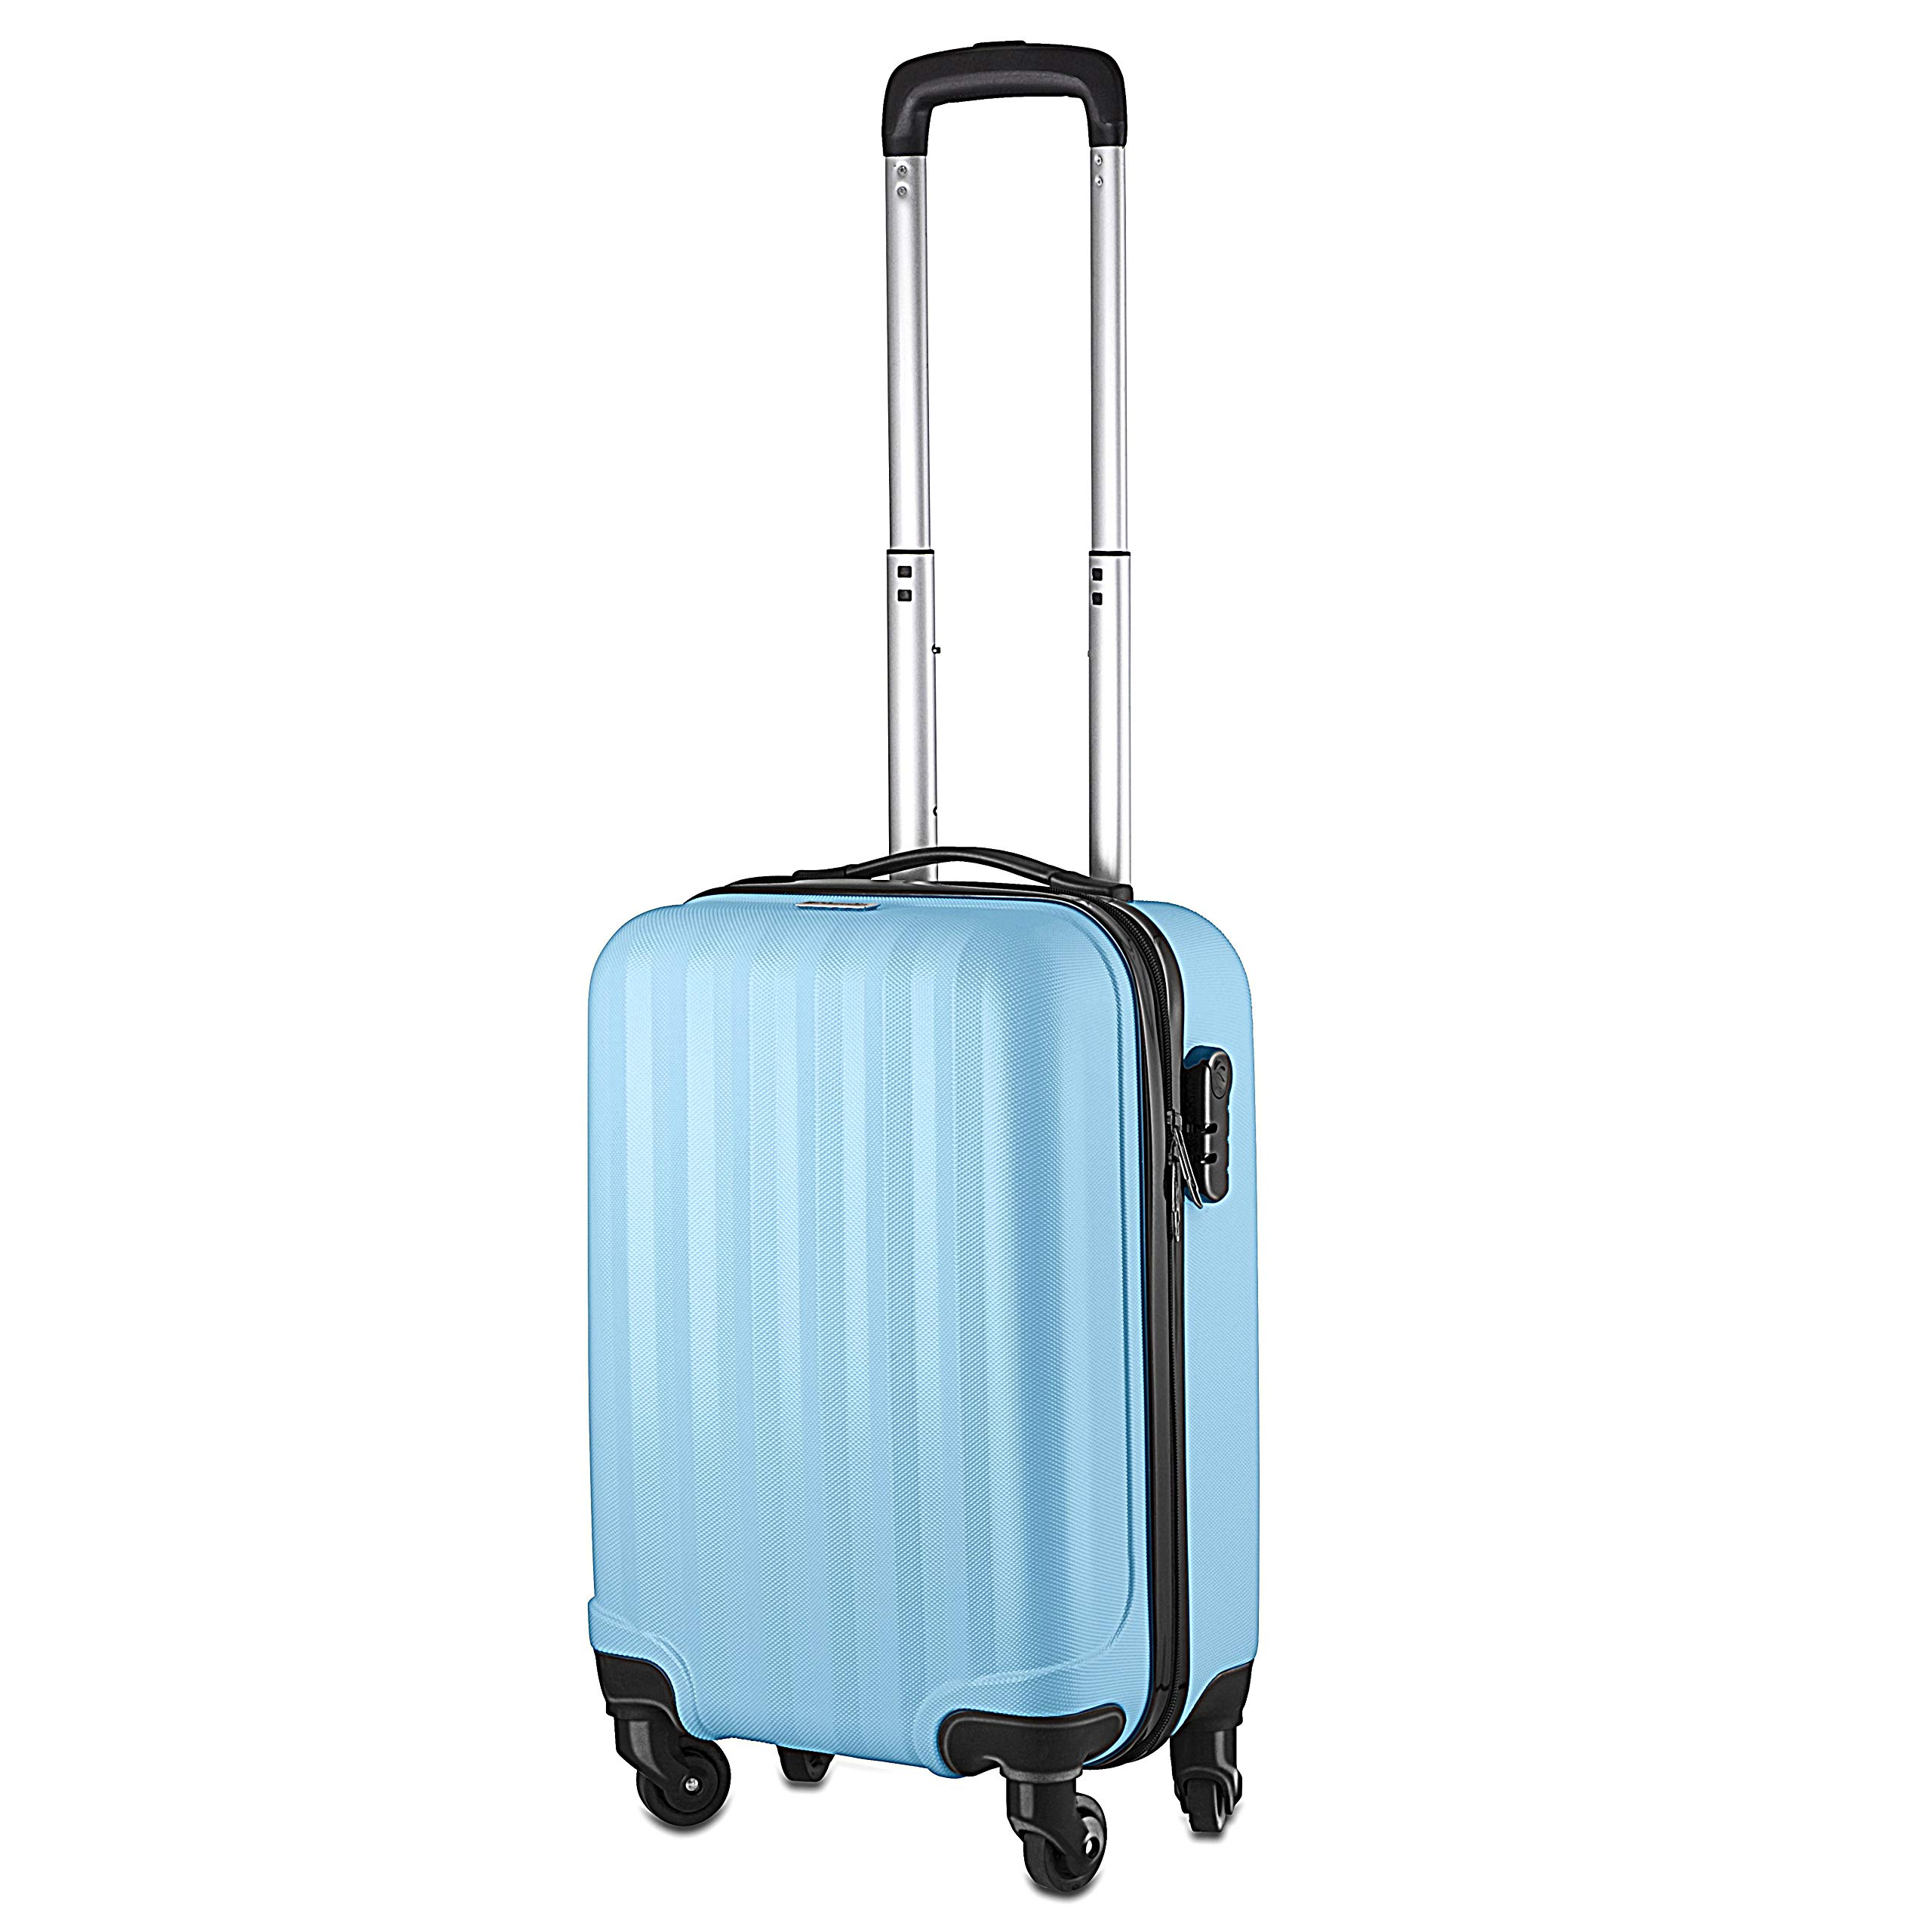 Fun Luggage Multi Coloured Cabin Bag | Carry On Flight Case Wheels Hard | Ryanair Easyjet Flybe (Summer Skies Blue)